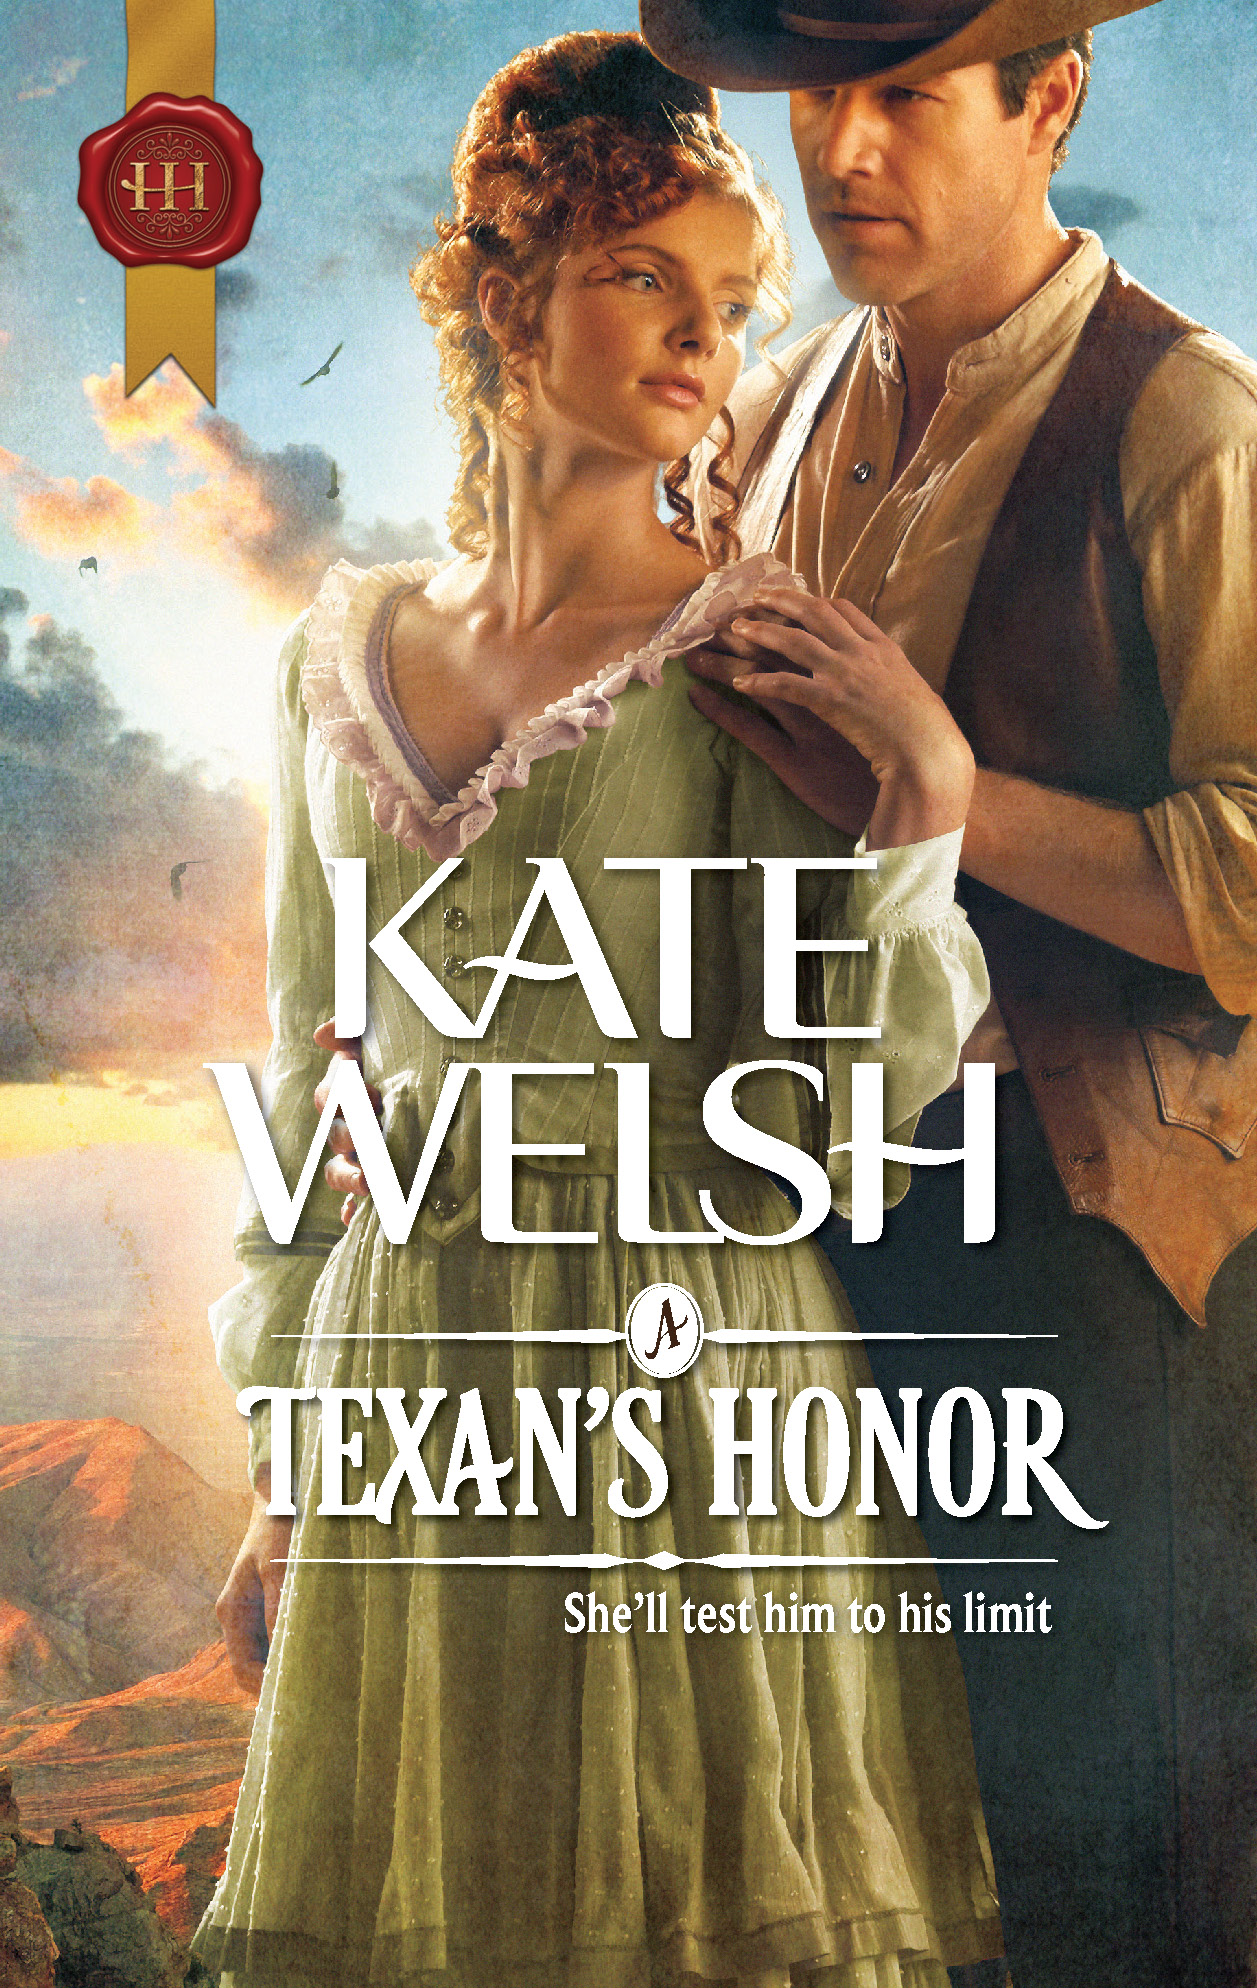 A Texan's Honor By: Kate Welsh